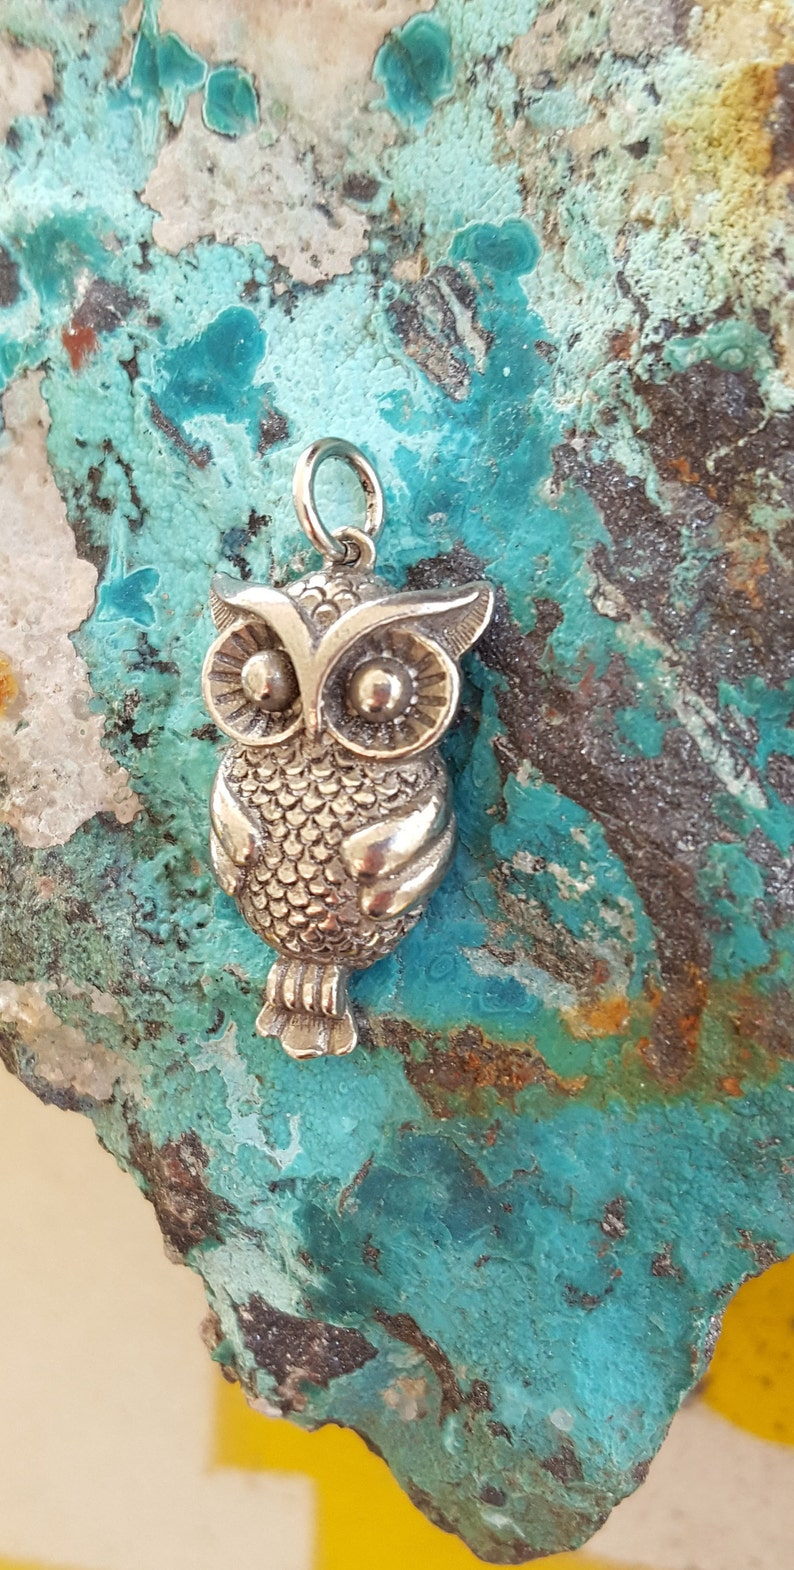 Pewter Owl Pendant~Artisan Pewter Handcrafted in Denver Colorado~Quality  Cast Pewter Solid Owl Bird Pendant~Gift for Her~JewelsandMetals